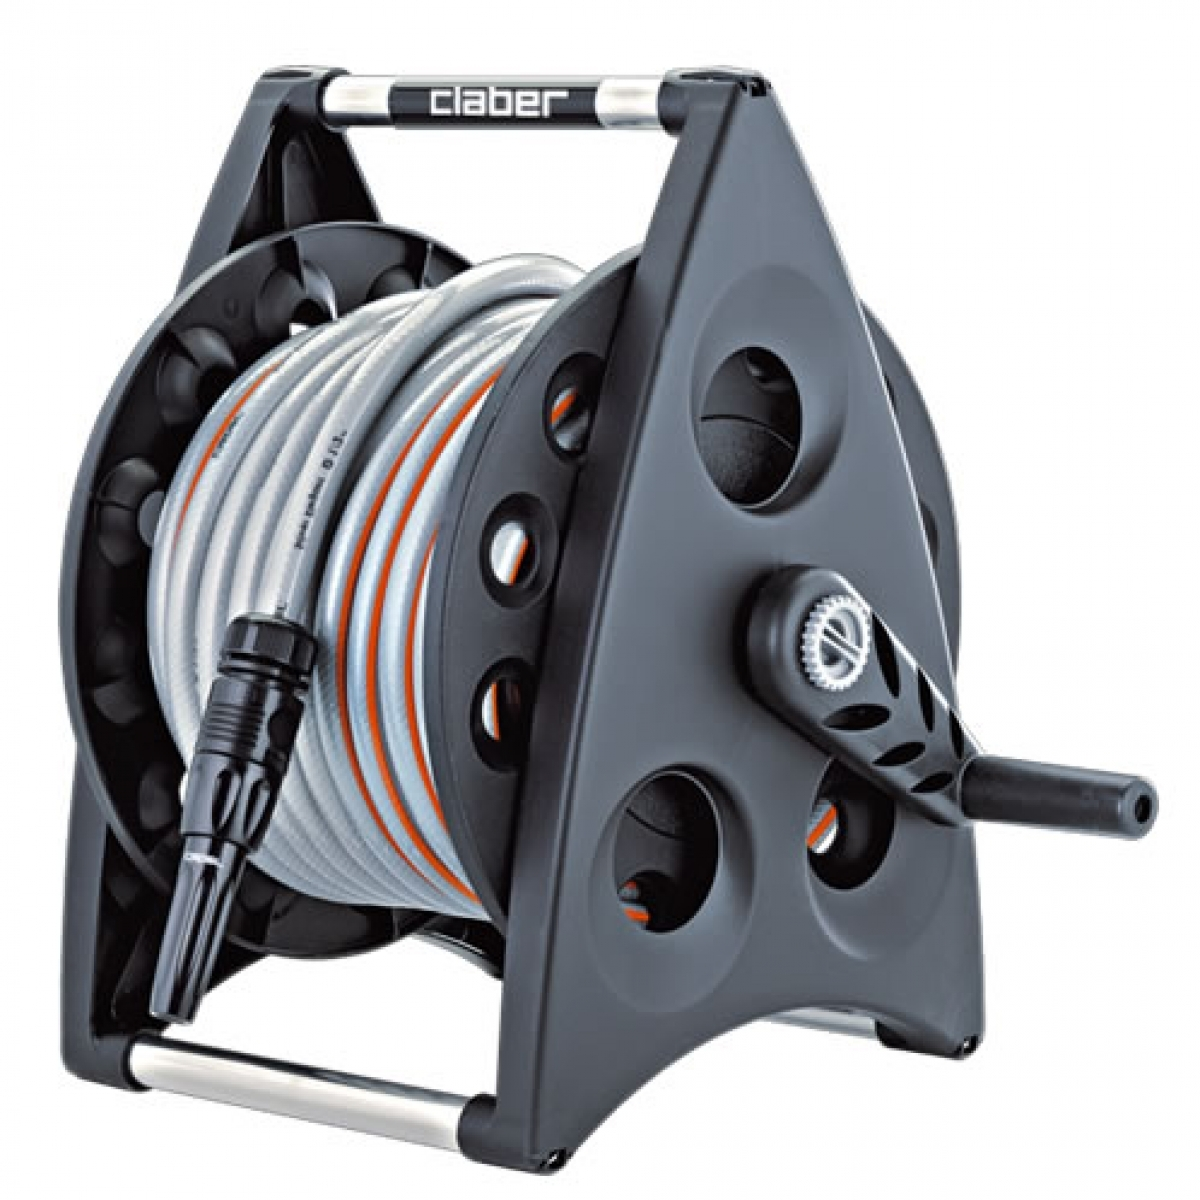 Claber 20m Kiros Kit Portable Hose Reel My Power Tools